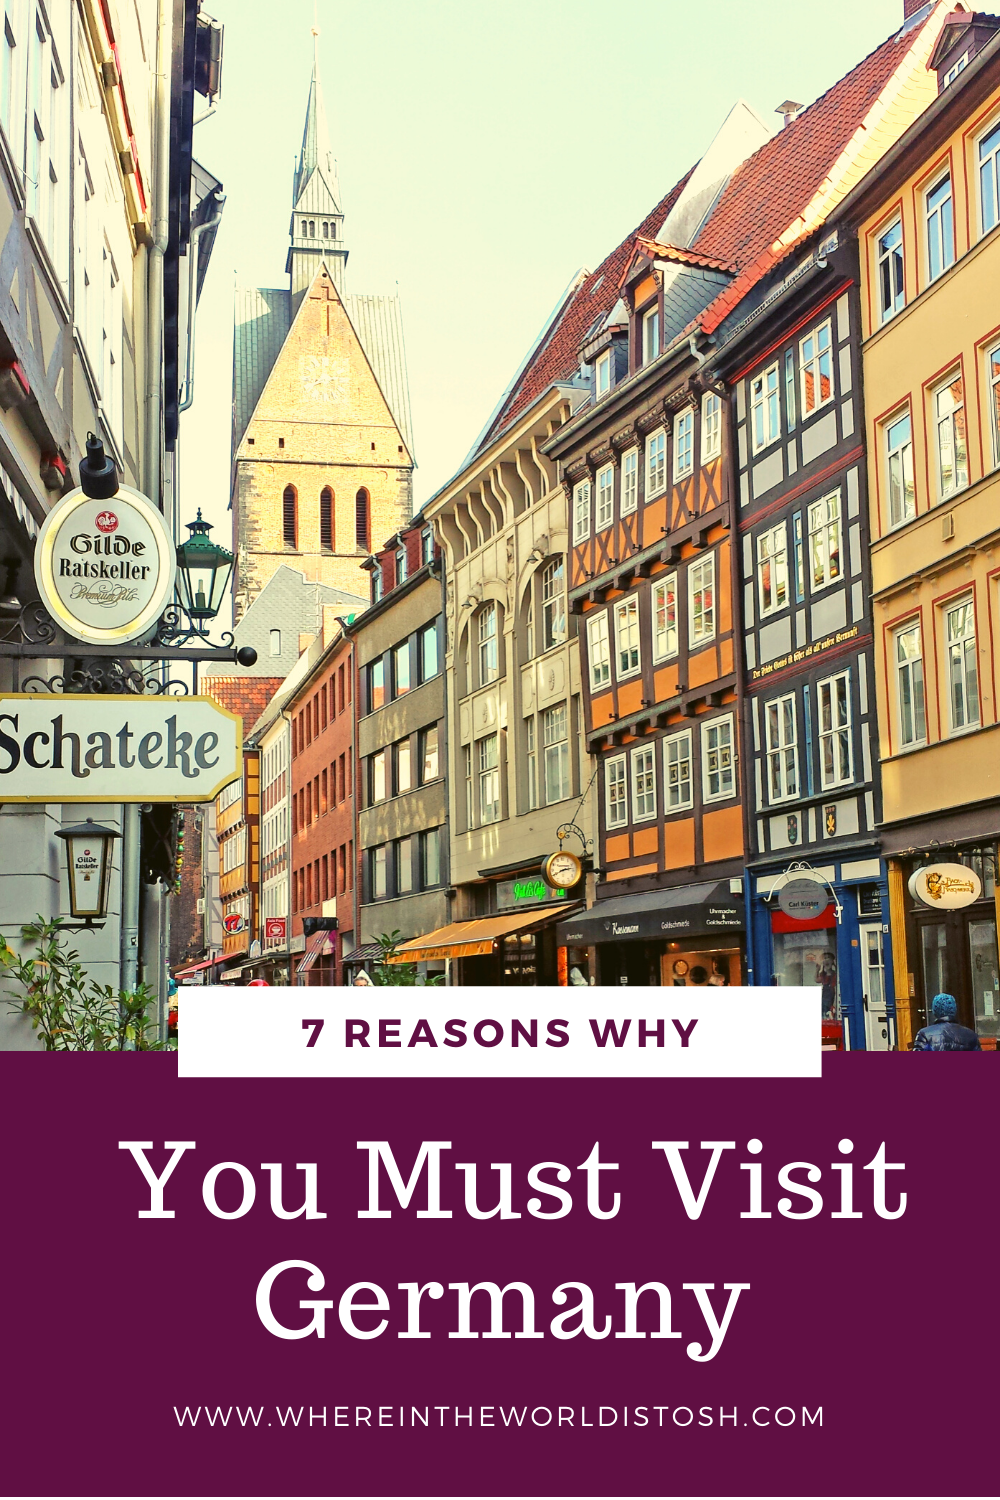 7 Reasons Why You Must Visit Germany